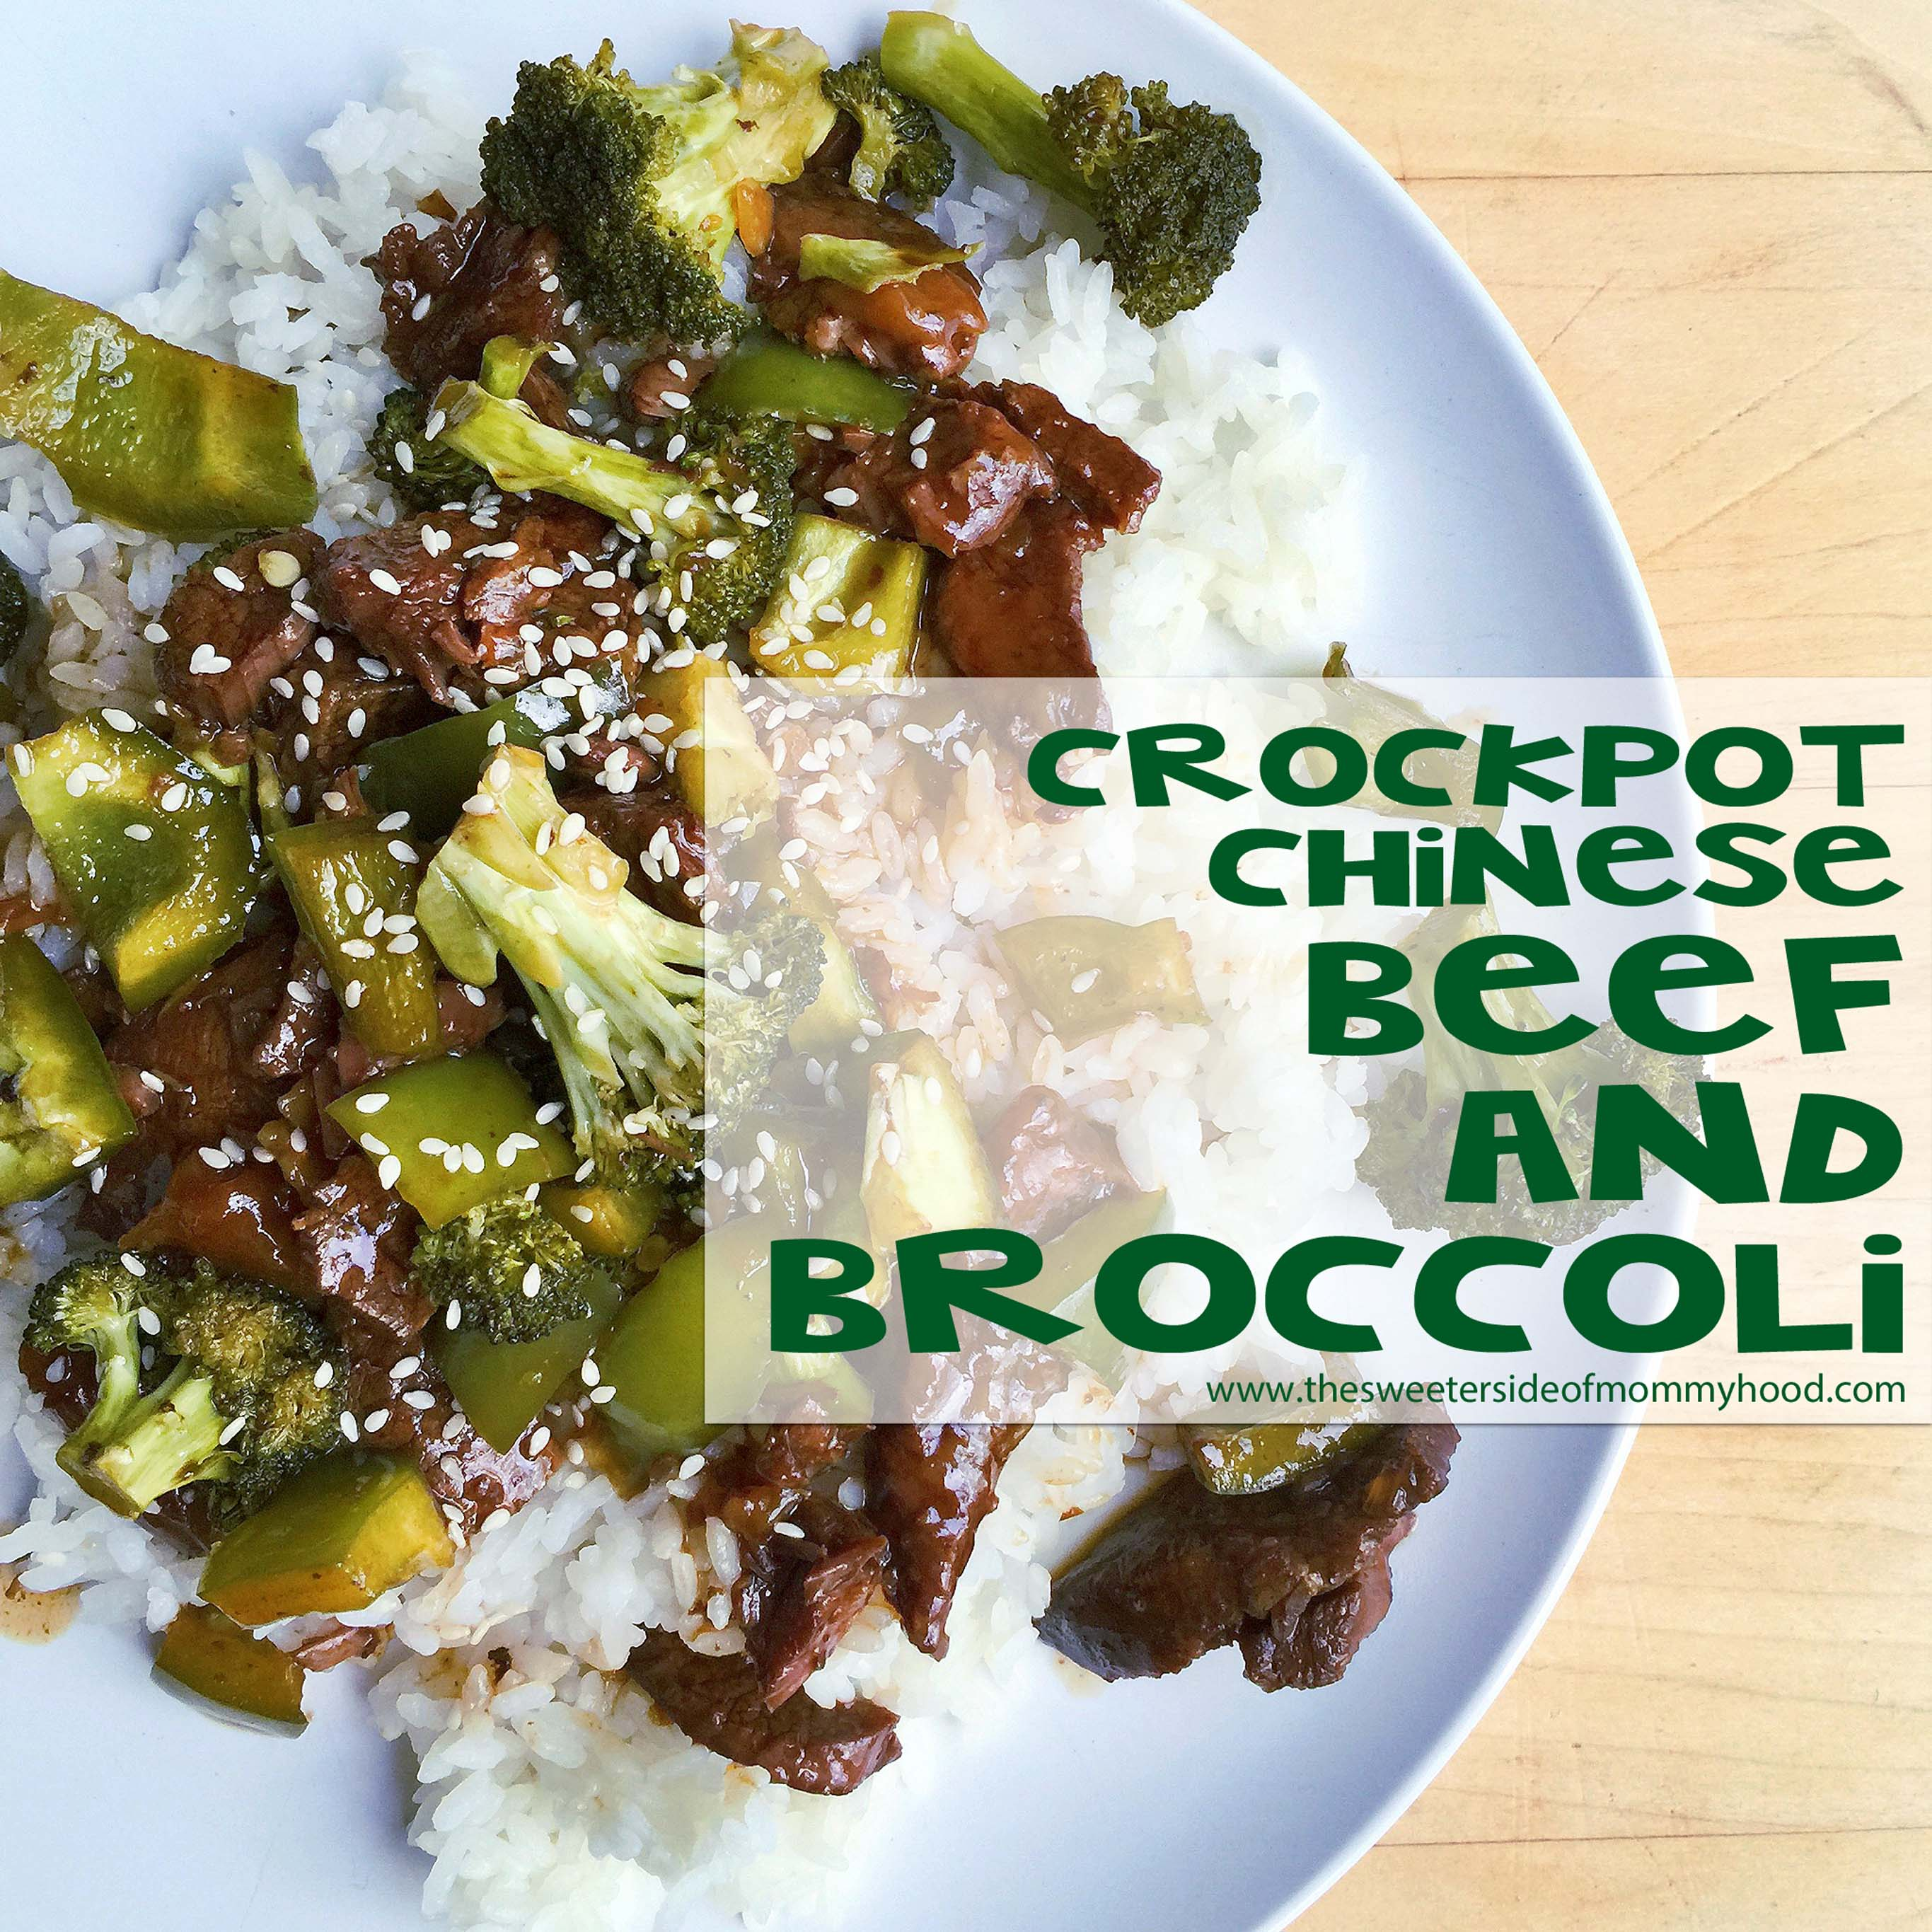 Crockpot Beef And Broccoli (It really is better than takeout!)